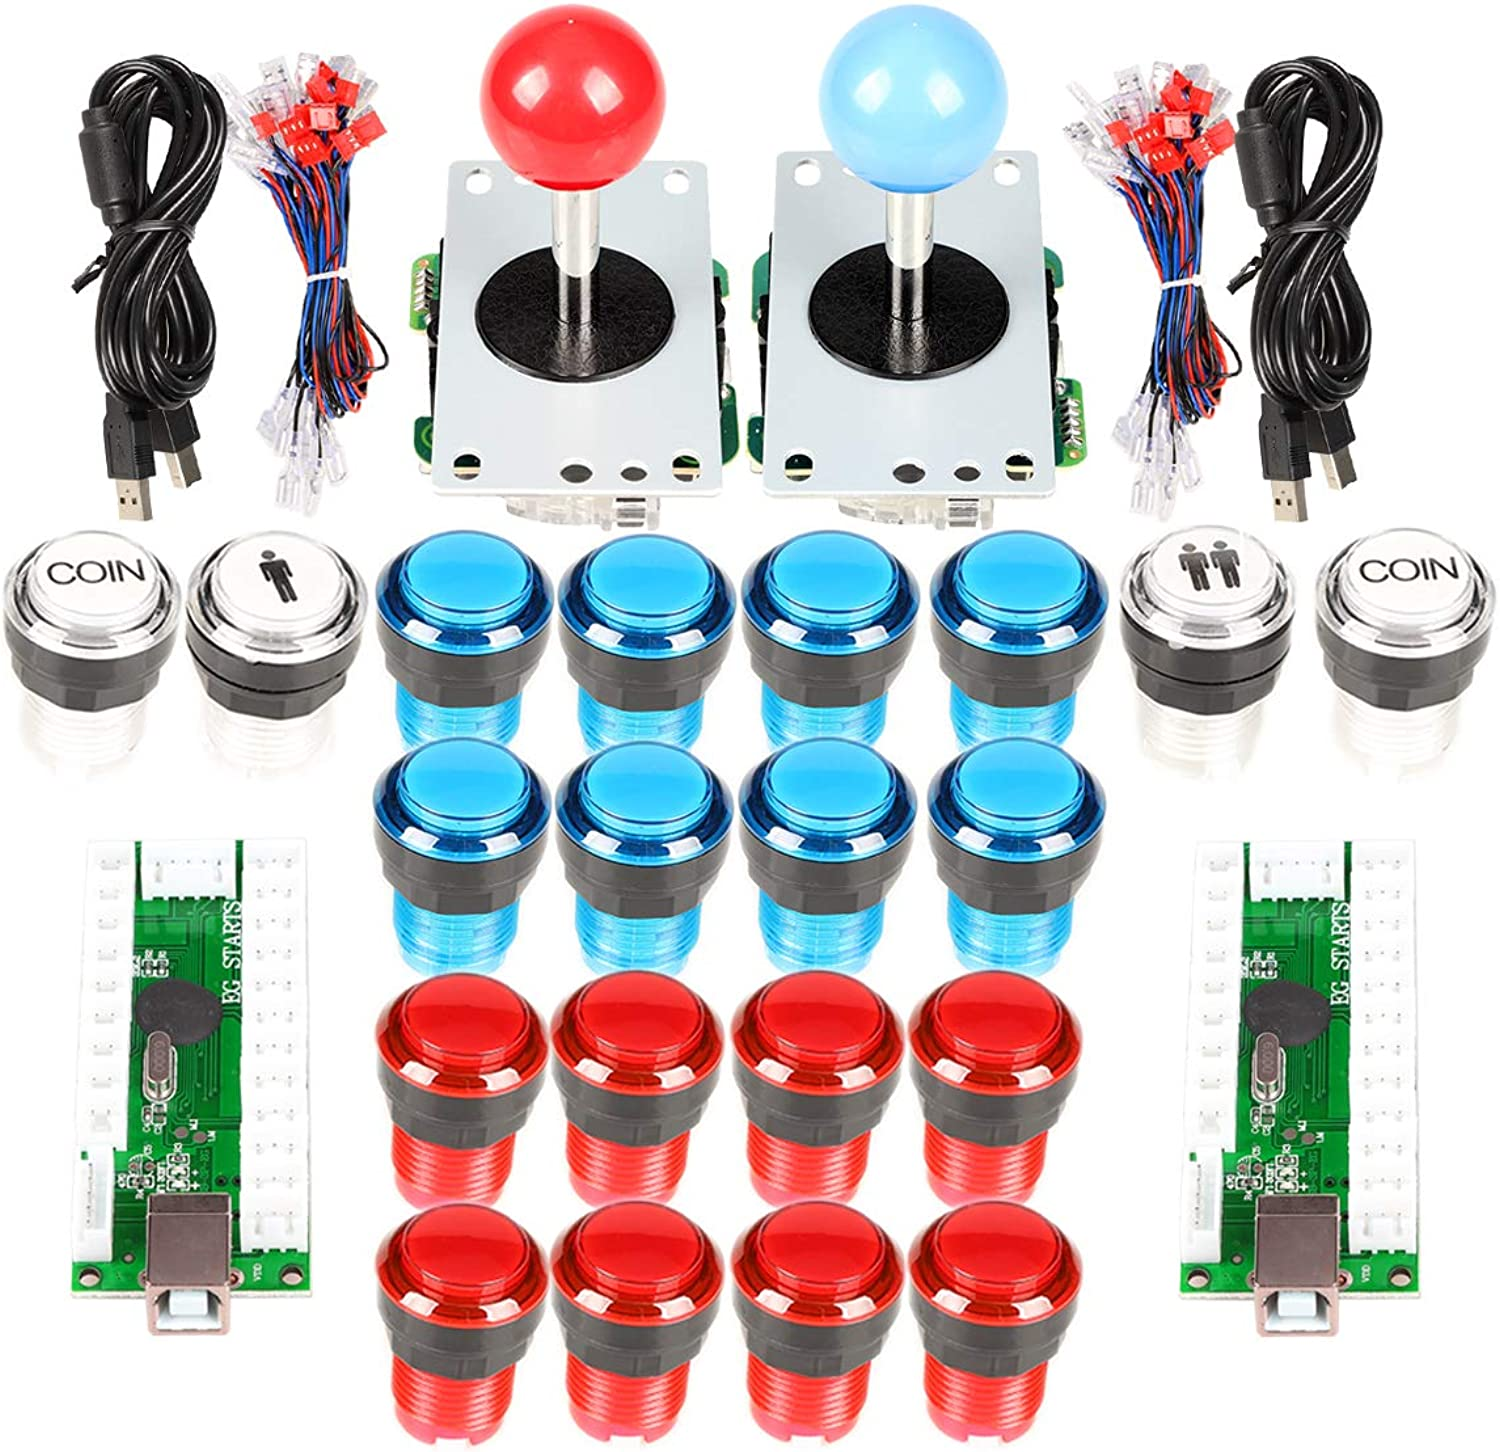 EG Starts Arcade DIY Kit Part 2x 8 Way Joystick + 16x LED Illuminated Push Button + 2 Player + Coin Buttons for Raspberry Pi 3B Model Project DIY Red & bluee